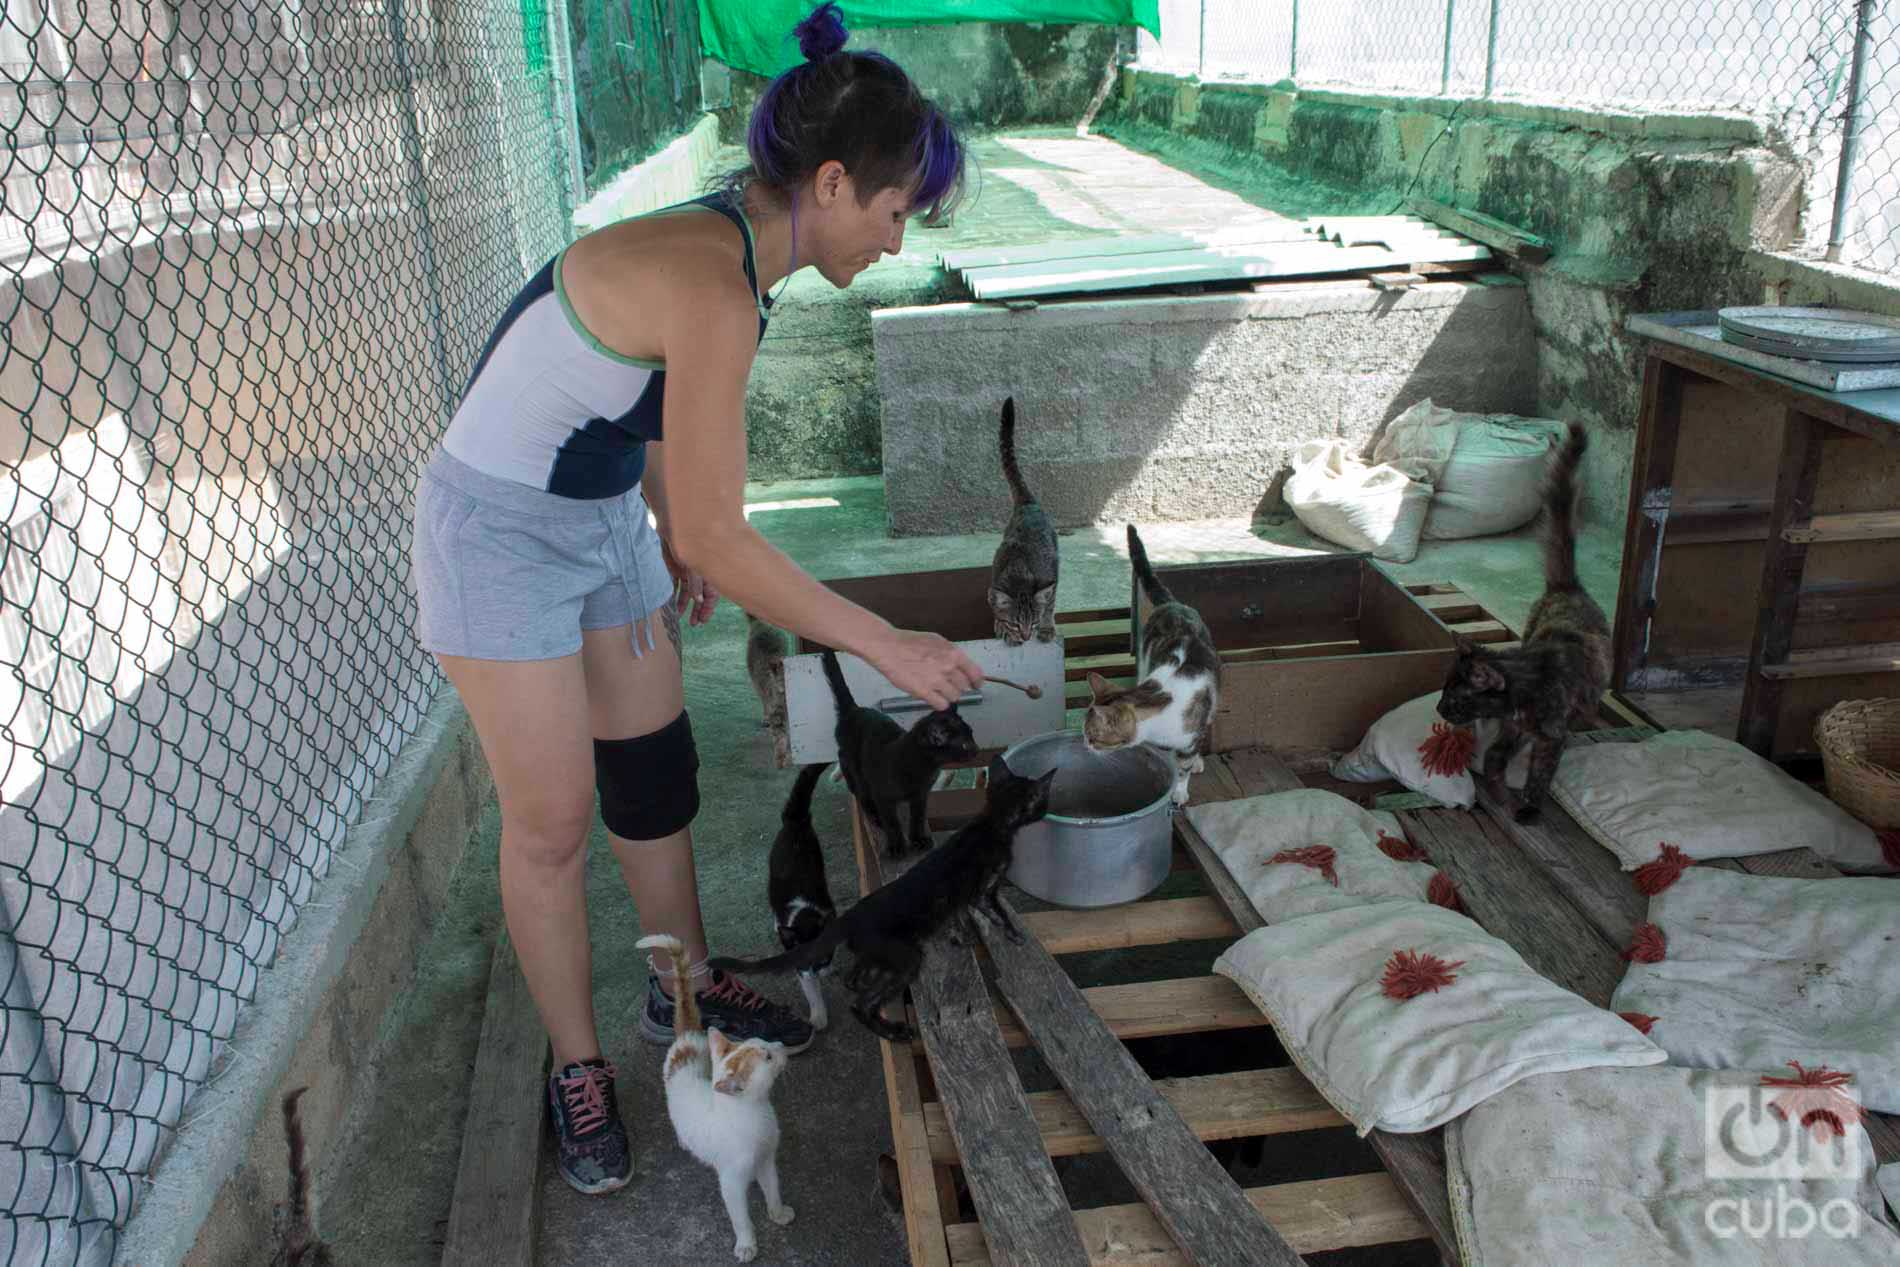 Lis Núñez feeding several of the cats from her shelter in the Havana town of Guanabacoa. Photo: Otmaro Rodríguez.